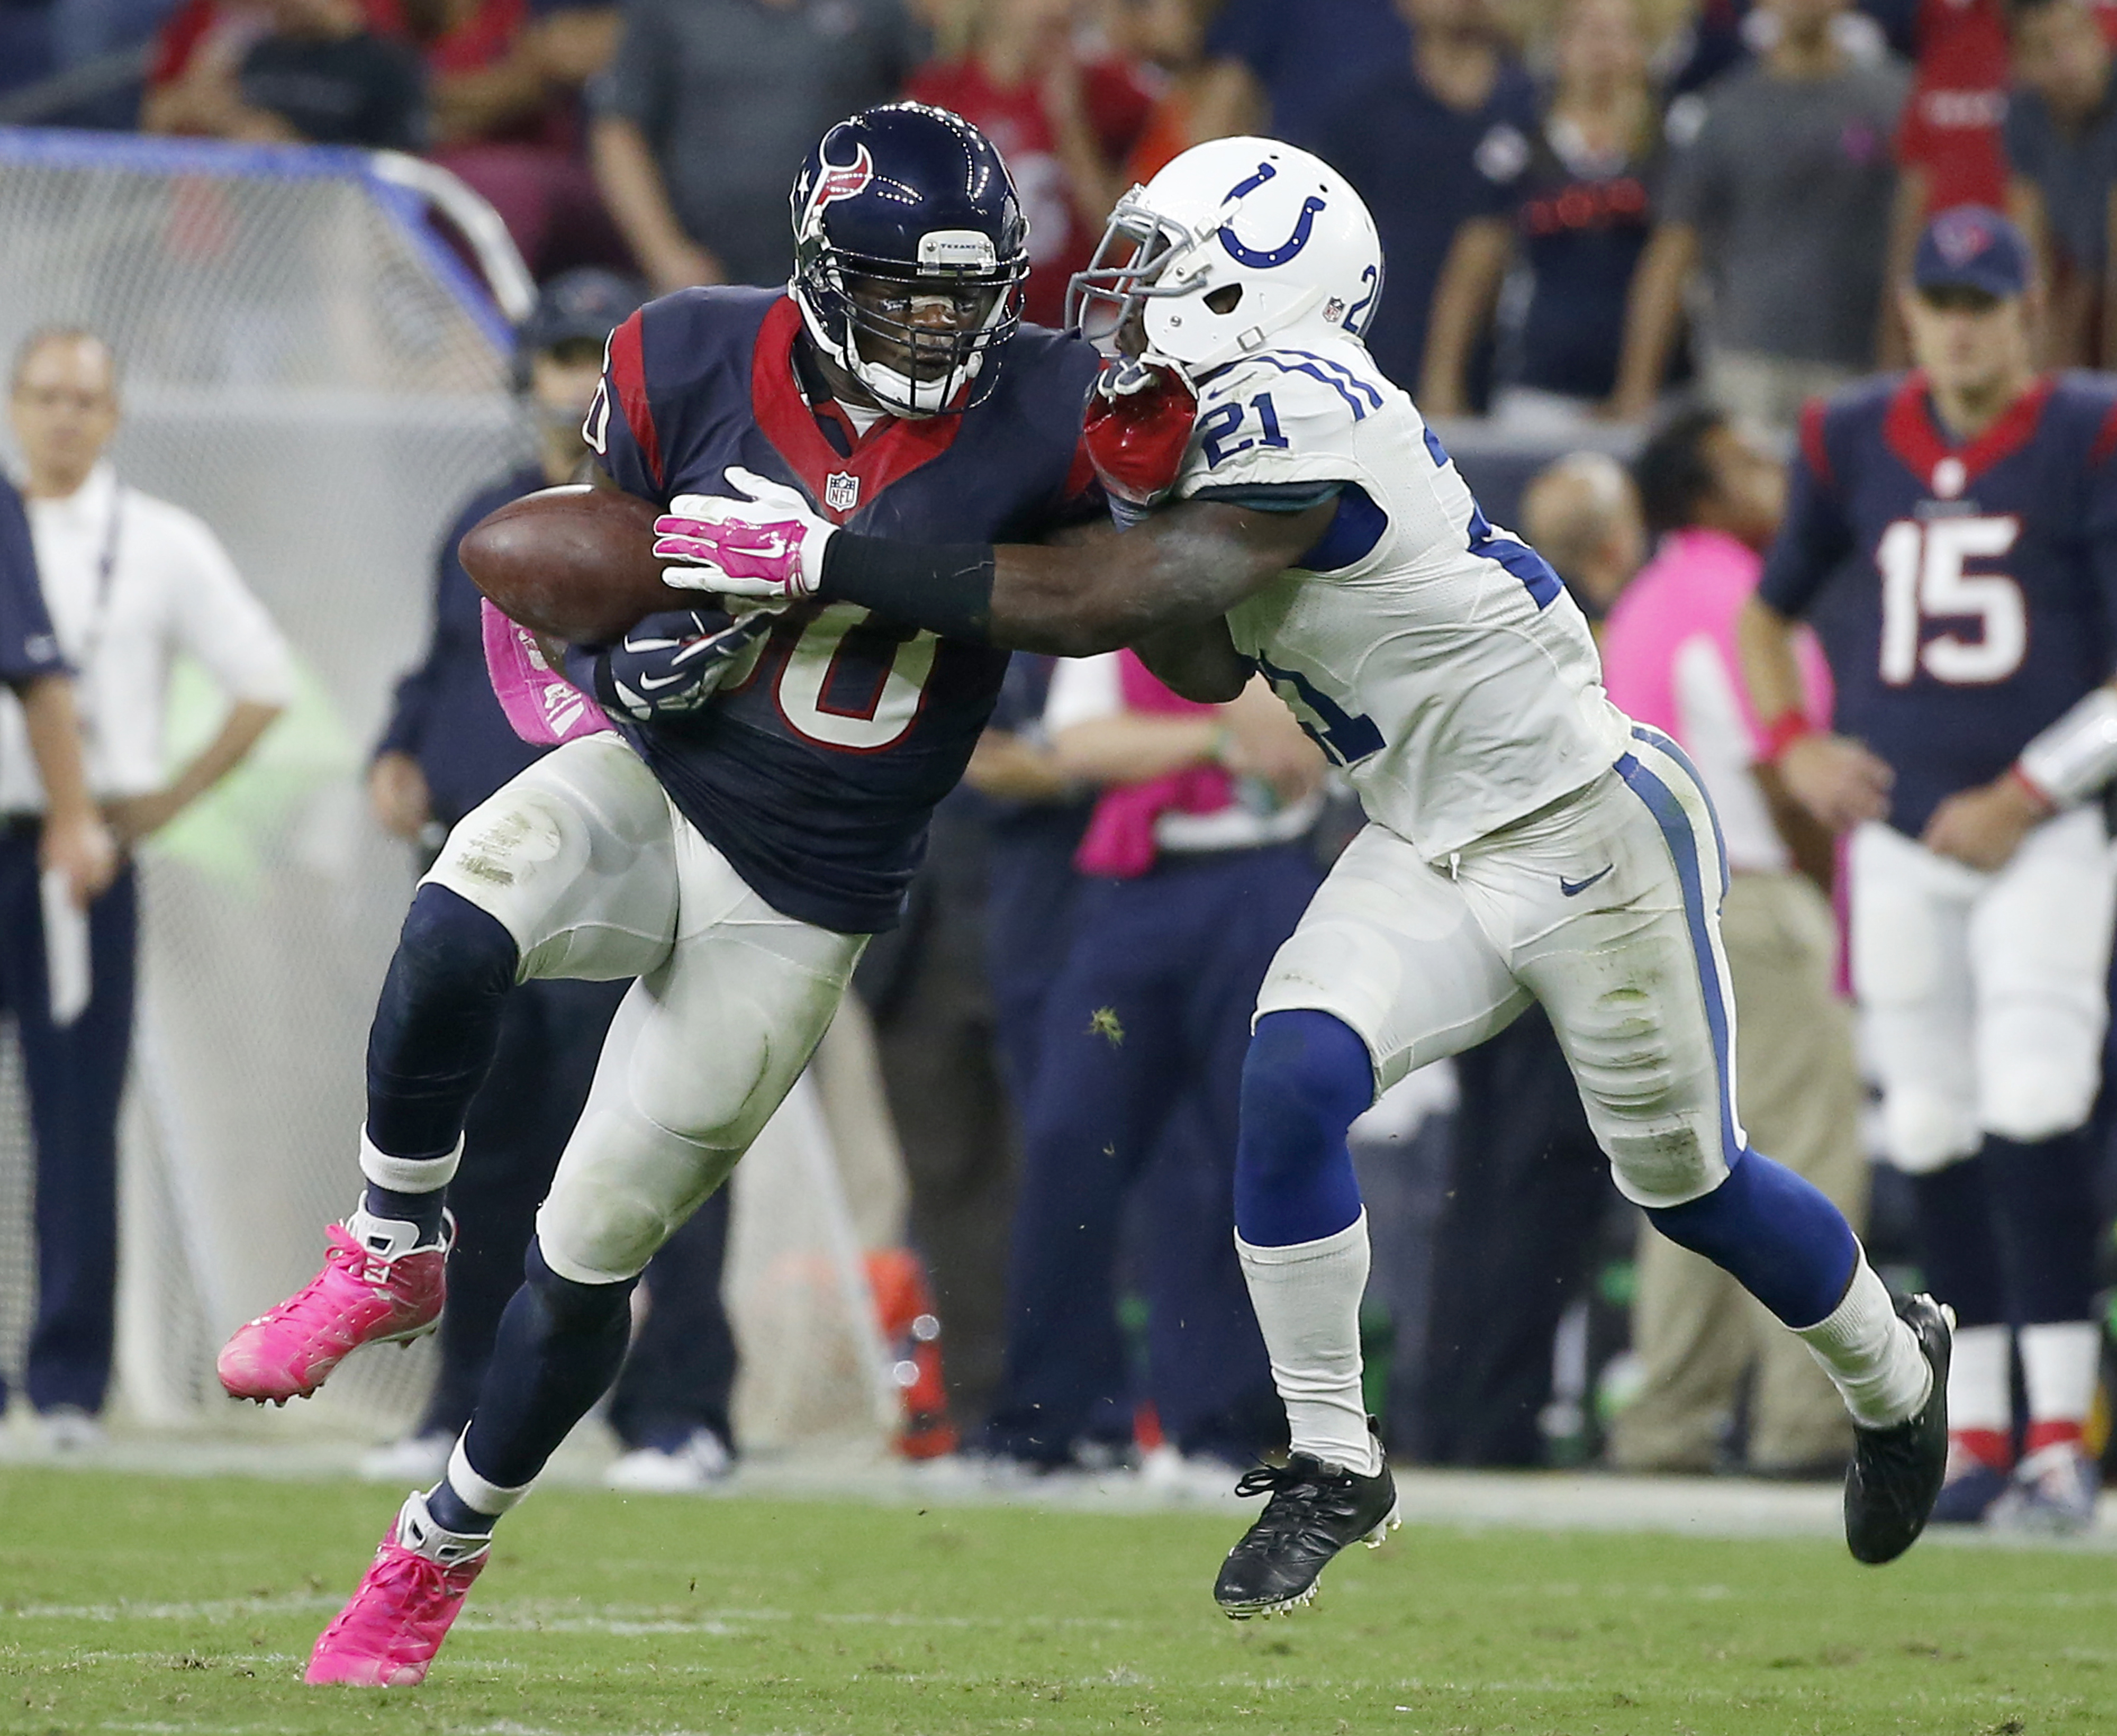 Andre Johnson's costly fumble was only upstaged by... Ryan Fitzpatrick's costly fumble in Houston's 33-28 loss to Indianapolis Thursday night